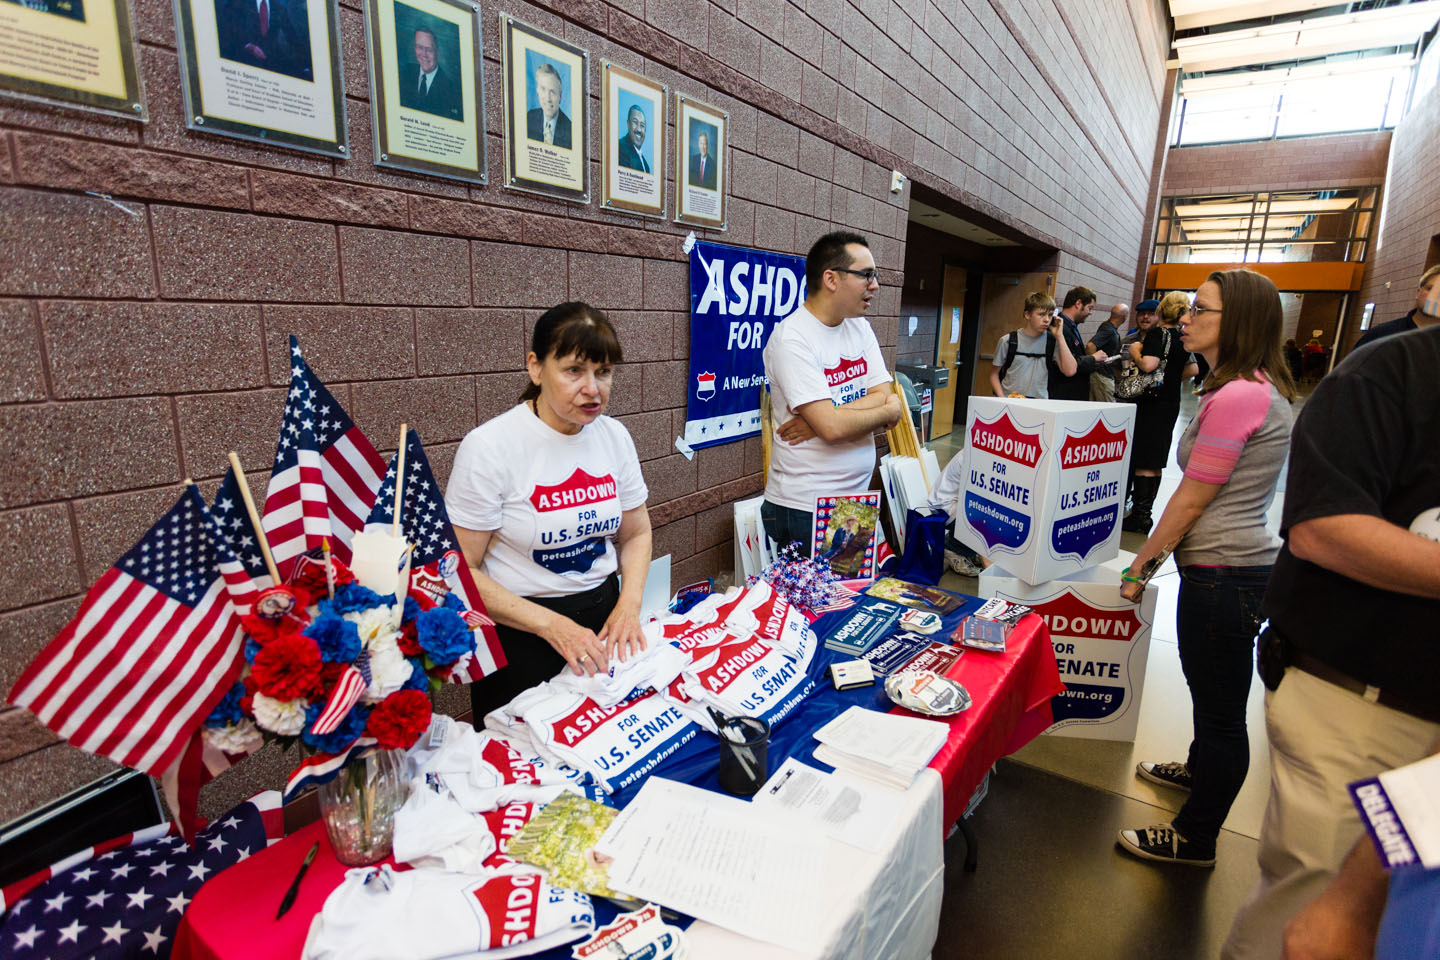 The booth for Ashdown for U.S. Senate